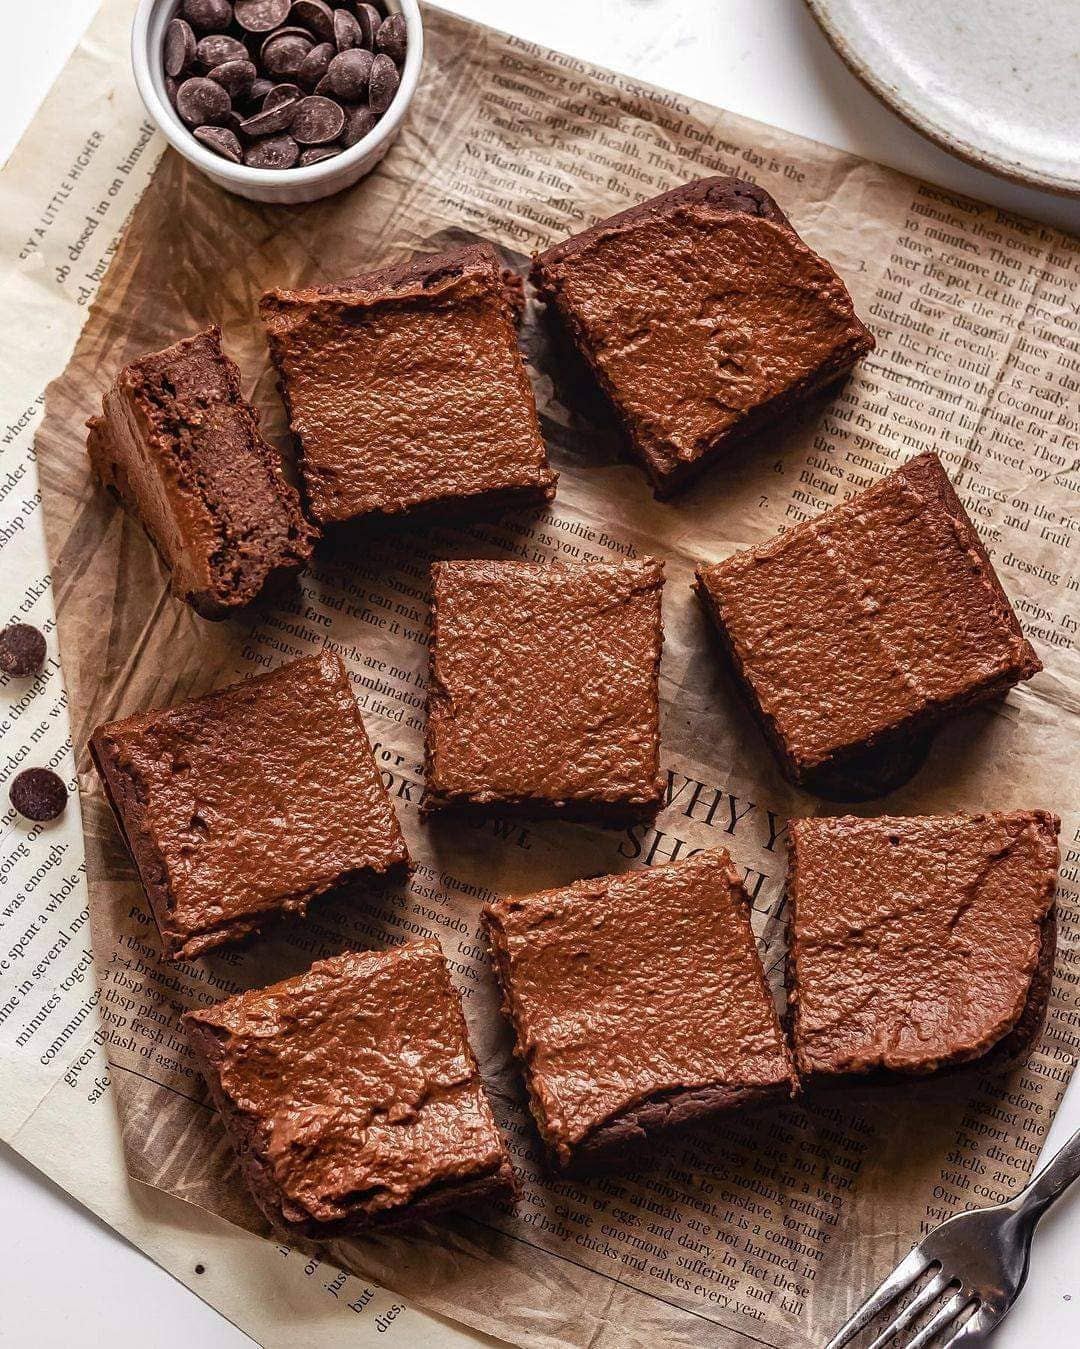 sugar free brownies  heres another shot of the brownies display image  9d4f5d27